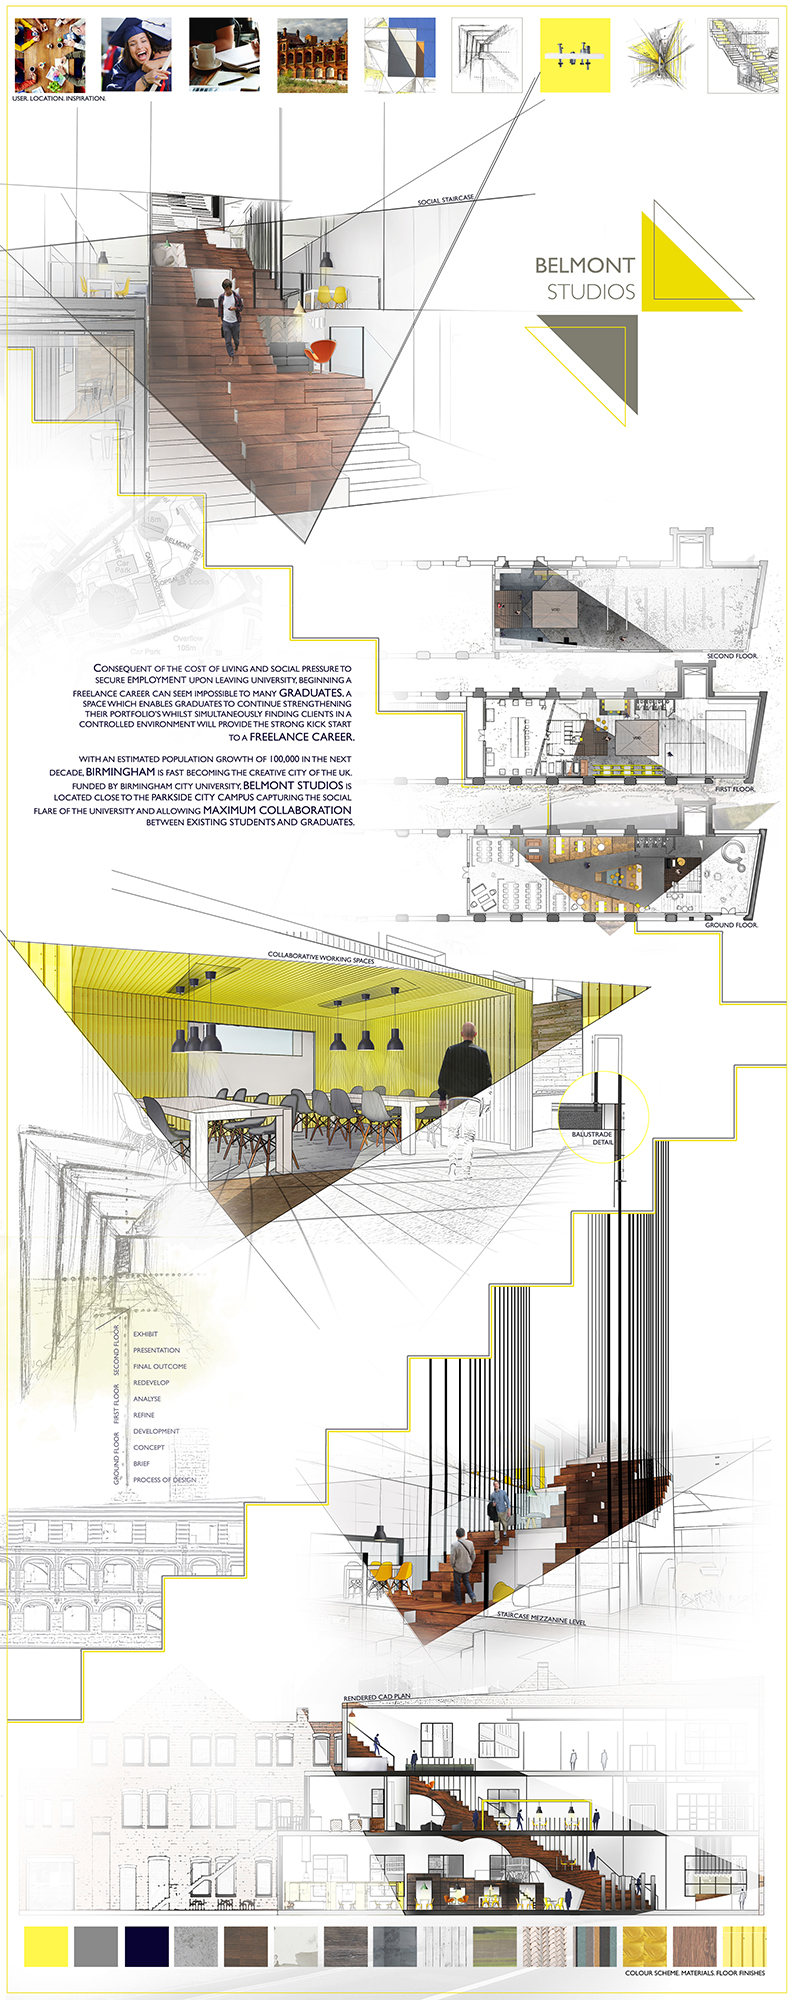 Interior Architecture And Design Ba Hons 2020 21 Entry Birmingham City University